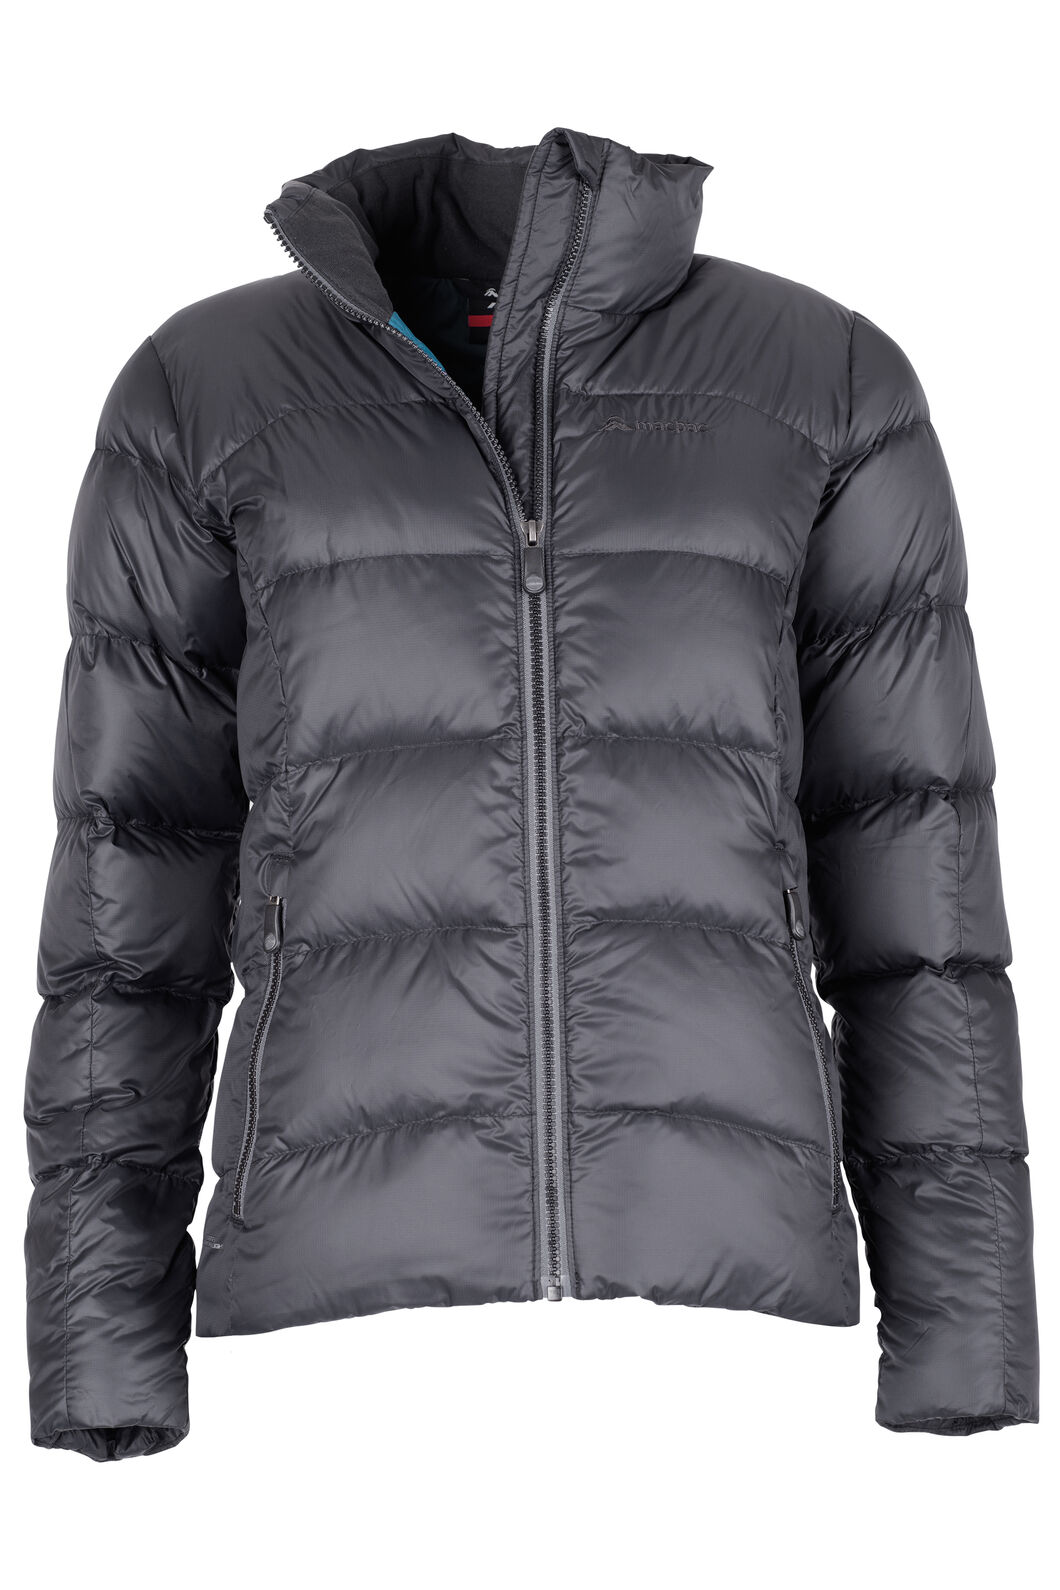 Sundowner HyperDRY™ Down Jacket - Women's, Black, hi-res